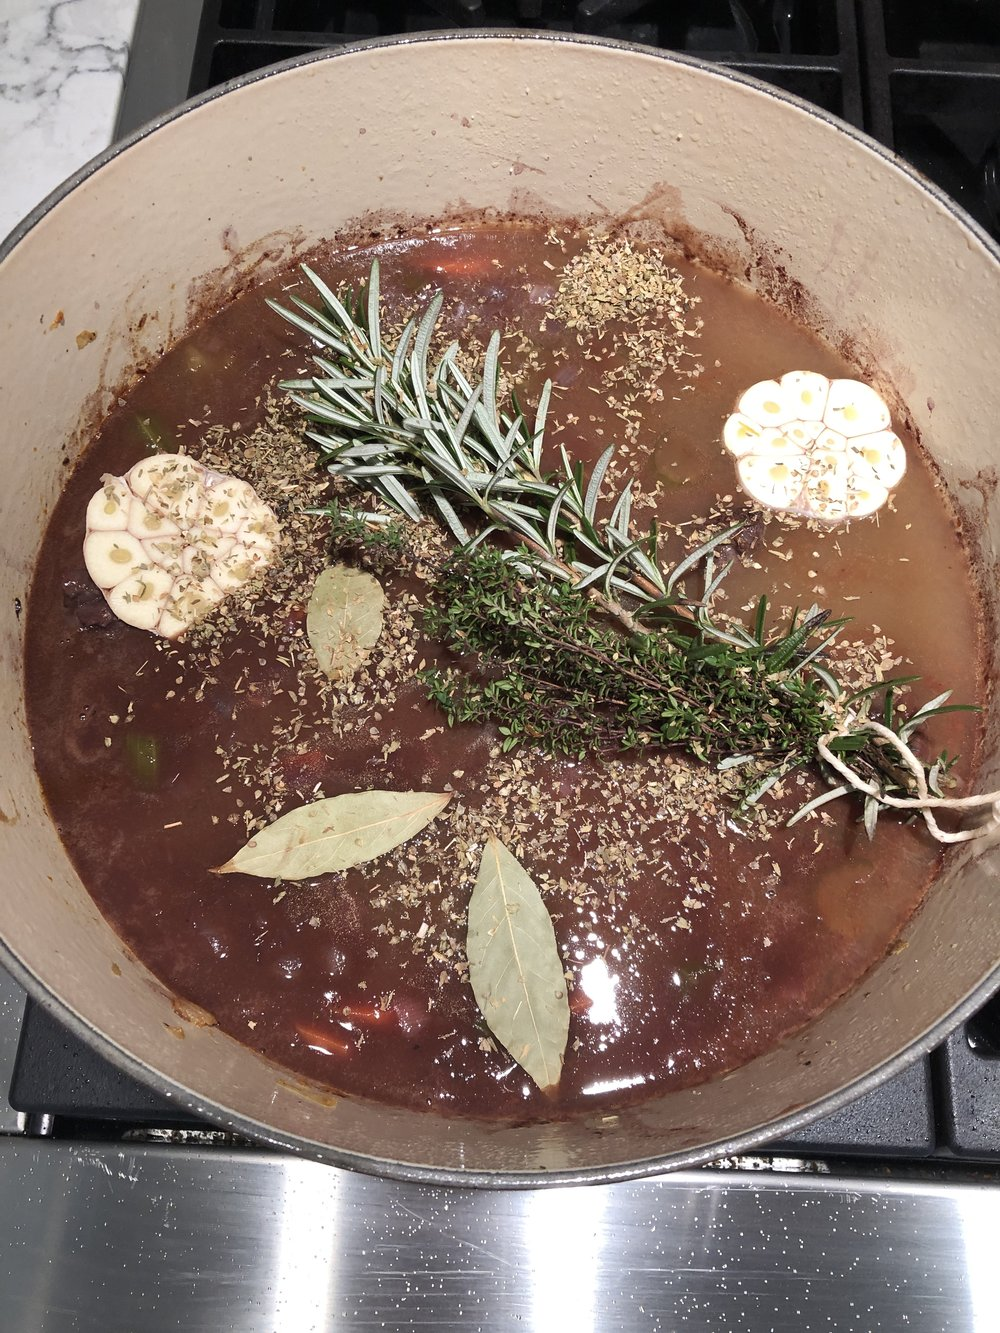 What the pot looks like before it goes in the oven